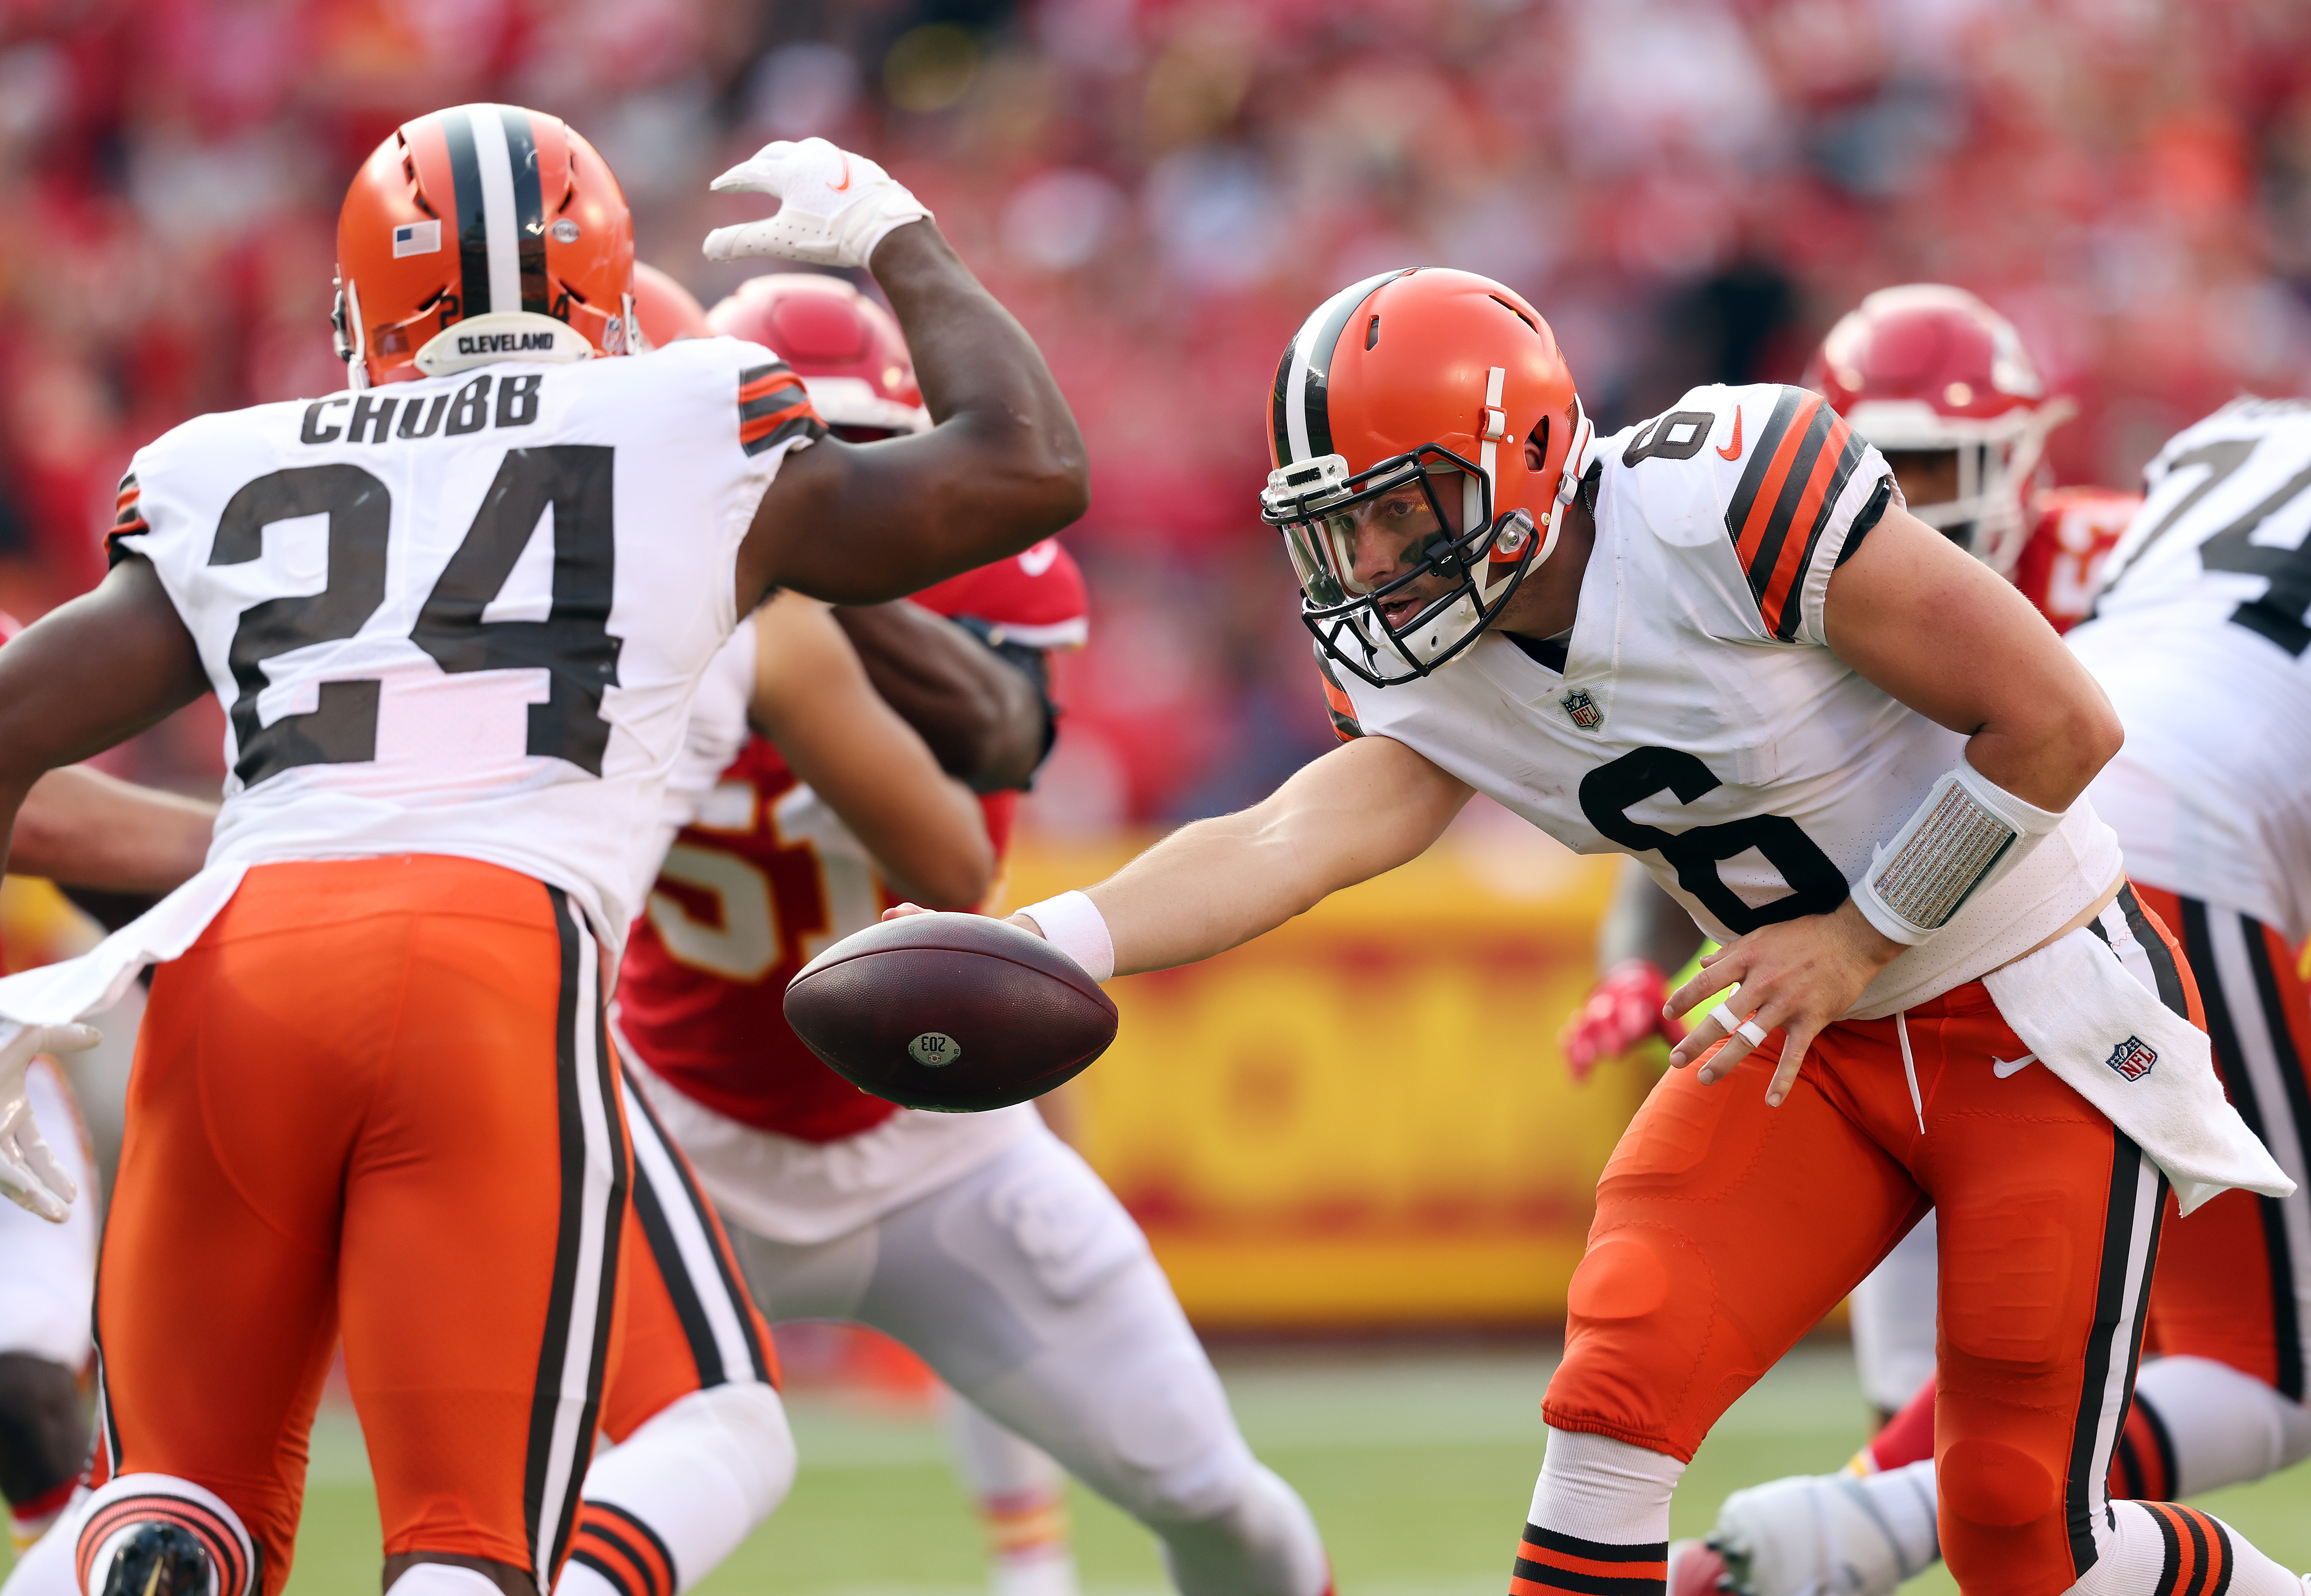 Quarterback Baker Mayfield #6 of the Cleveland Browns hands off to running back Nick Chubb #24 during the game against the Kansas City Chiefs at Arrowhead Stadium on September 12, 2021 in Kansas City, Missouri.